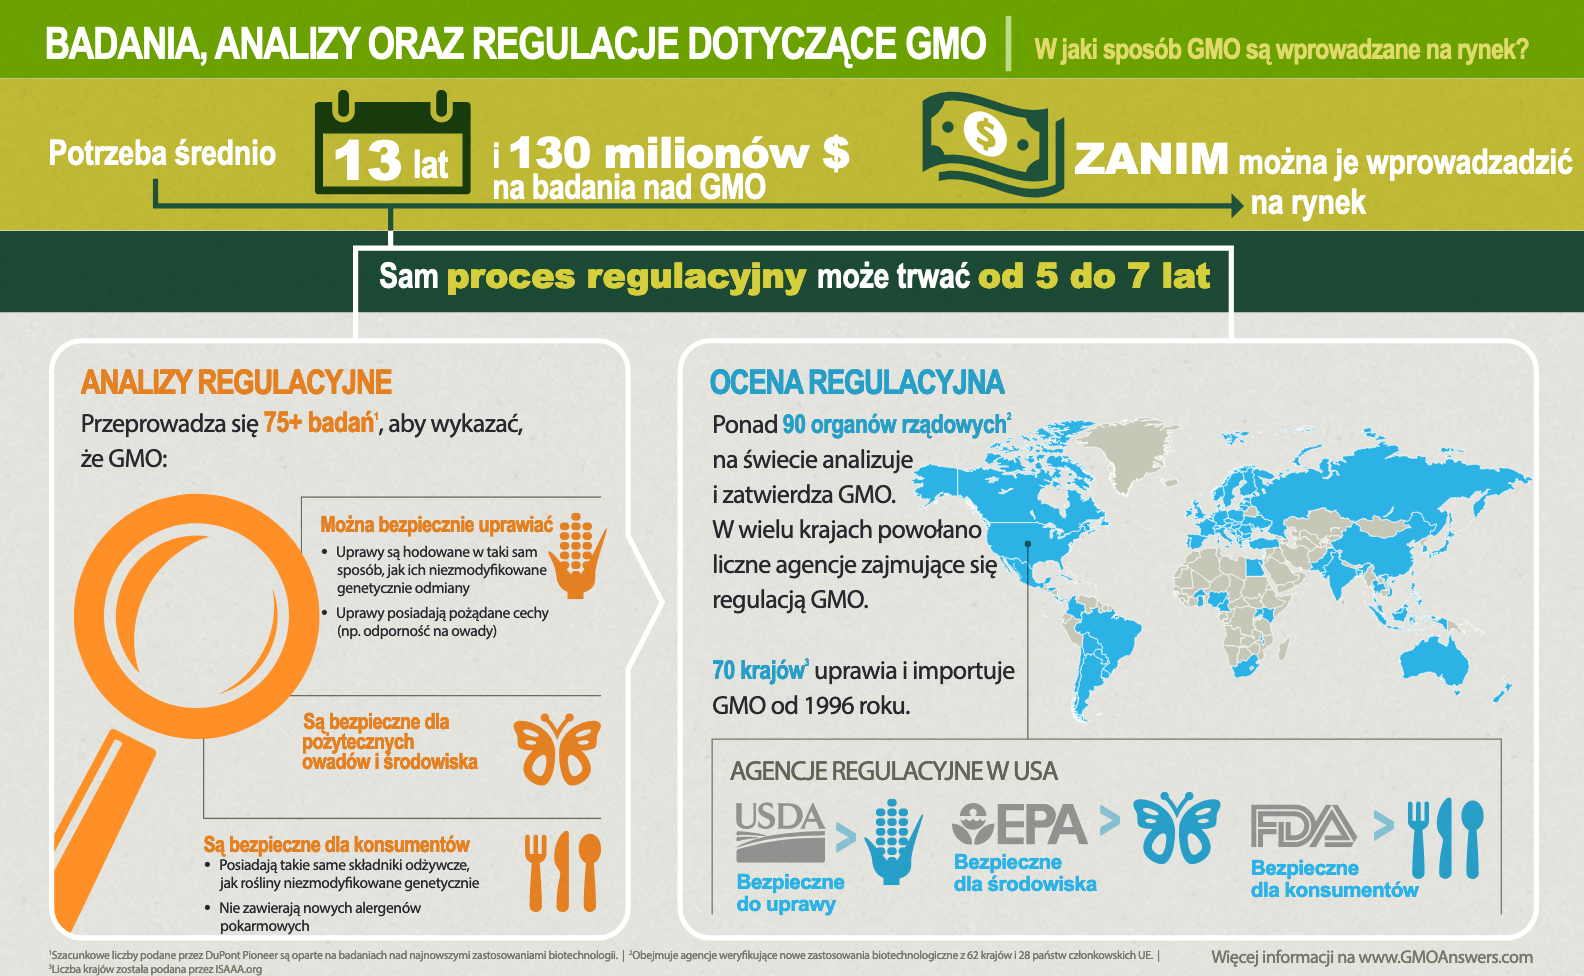 GMO Research, Review and Regulation